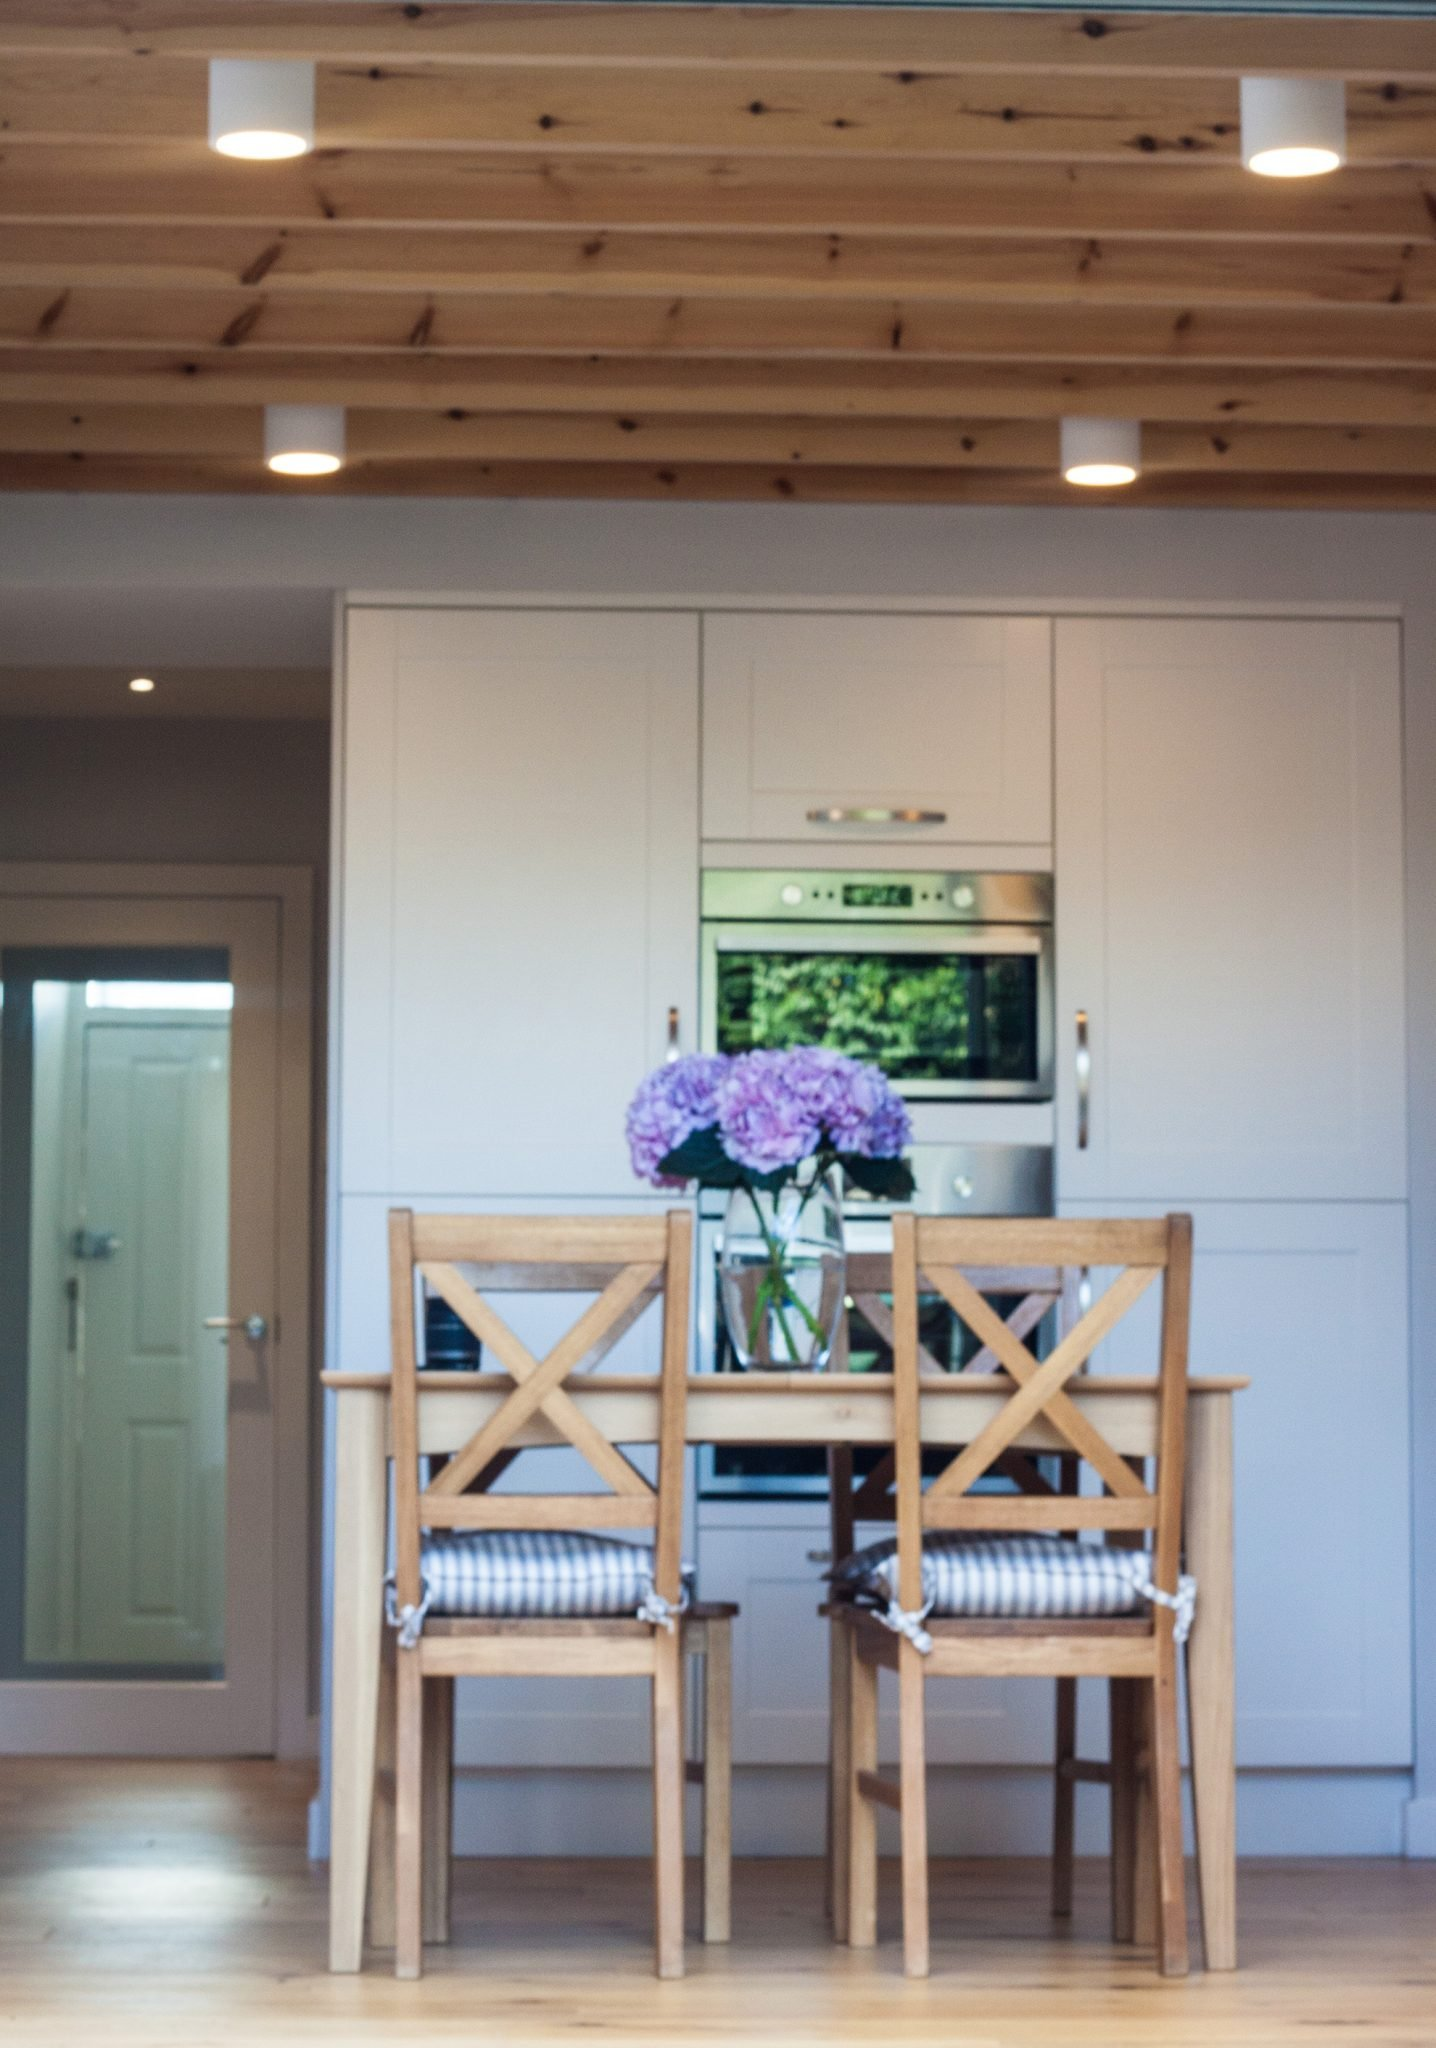 Architecture & Interior Design London | Stories by Shabnam Noor | interior design kitchen table and oven hampton court